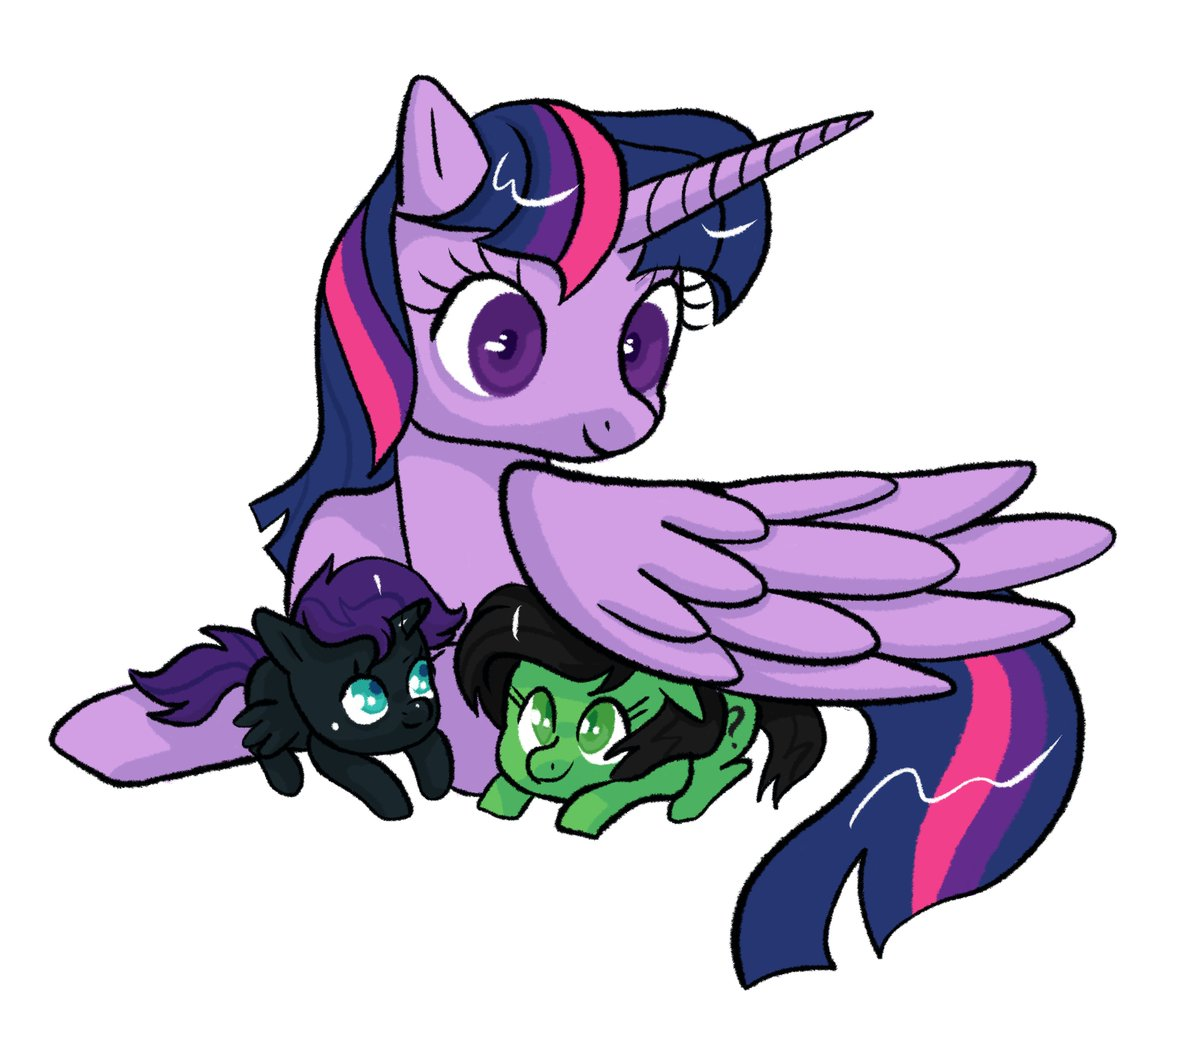 Such precious #twilightsparkle #mylittlepony #anonymus https://t.co/ClRwQoRlS8